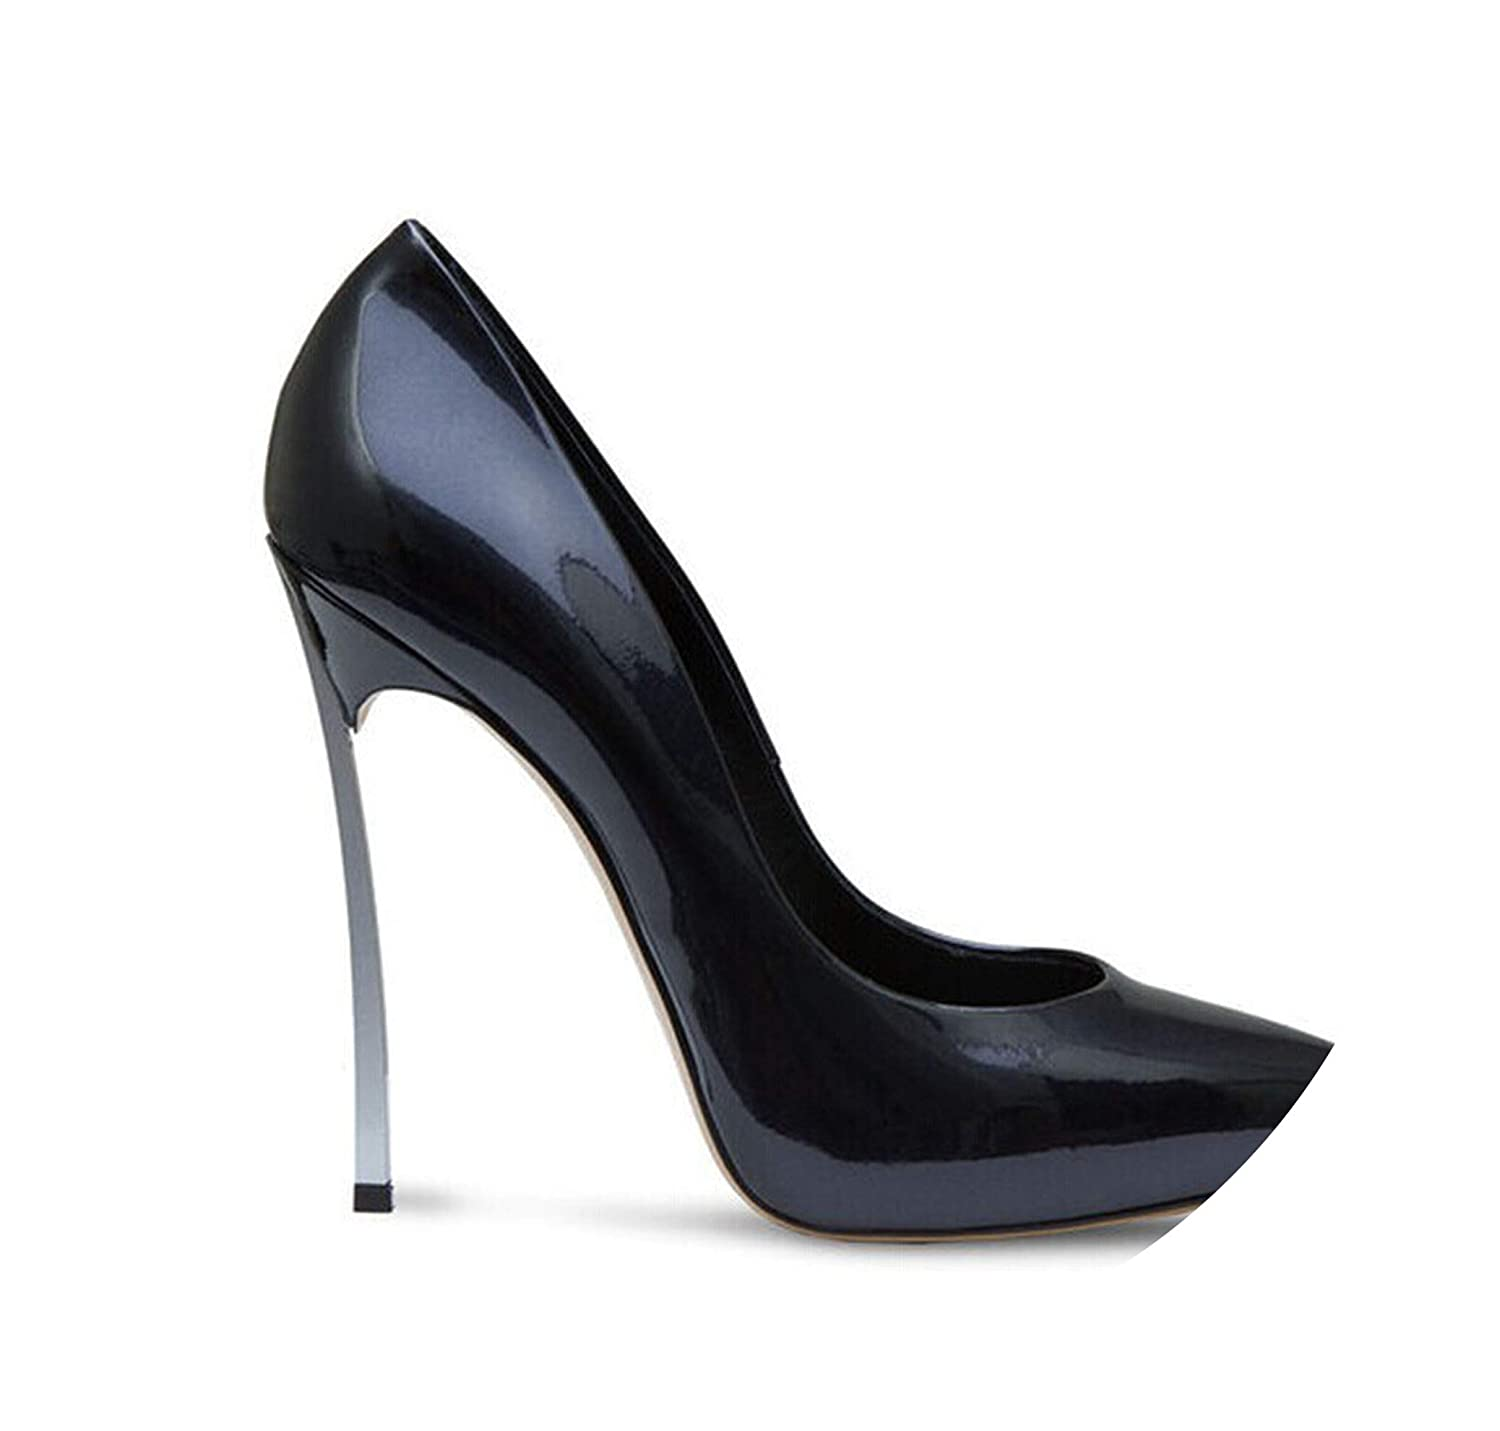 Patent black RAINIE002 Brand shoes Woman High Heels Women Pumps Stiletto Thin Heel Women's shoes Nude Pointed Toe High Heels Wedding shoes Size 33-43